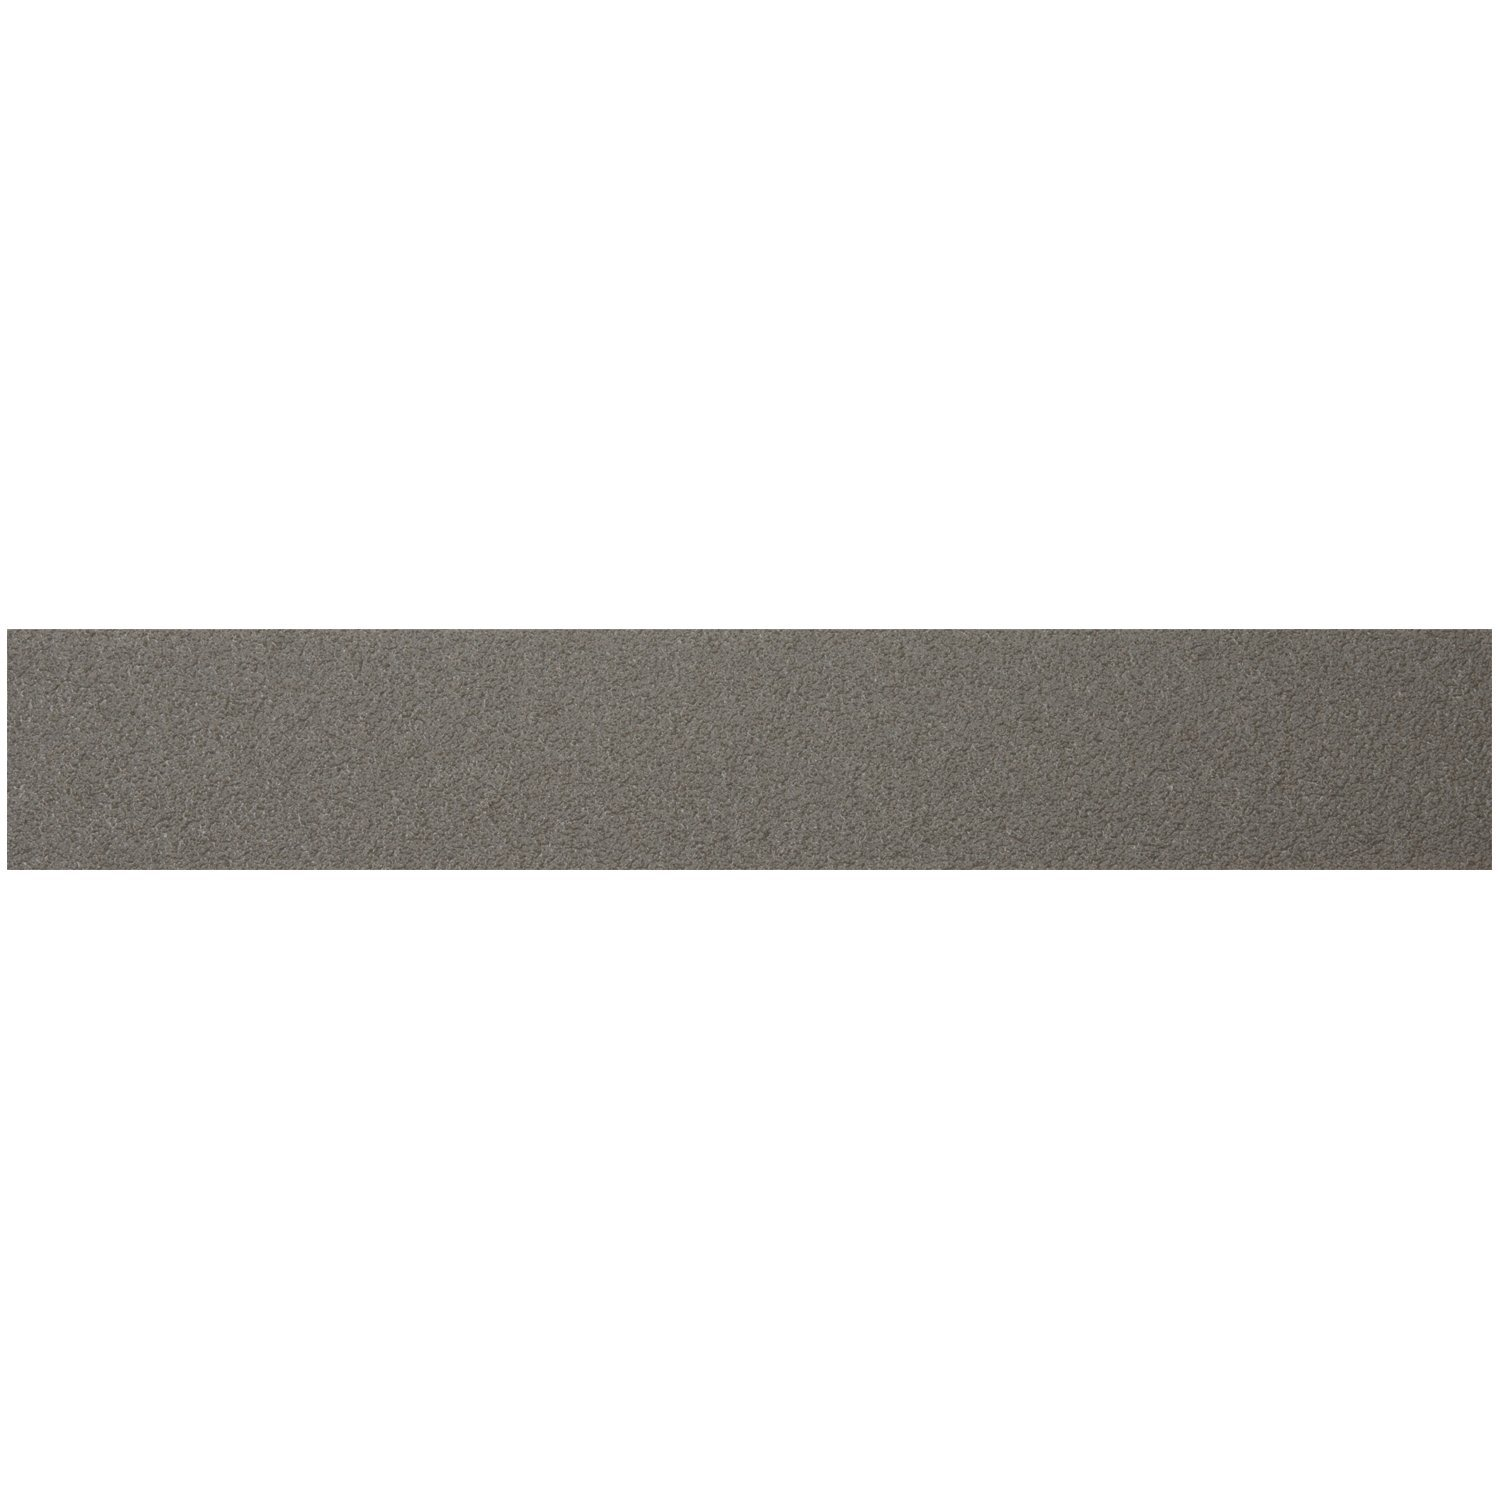 """Abrasive Sandpaper Fileboard Sheets 2.75""""x16.5"""" 50-Count Pack with Hook and Loop Backing and Premium Aluminum Oxide in Multiple Grits is Ideal for Automotive Car Body Repair and Woodworking-P100 Grit"""